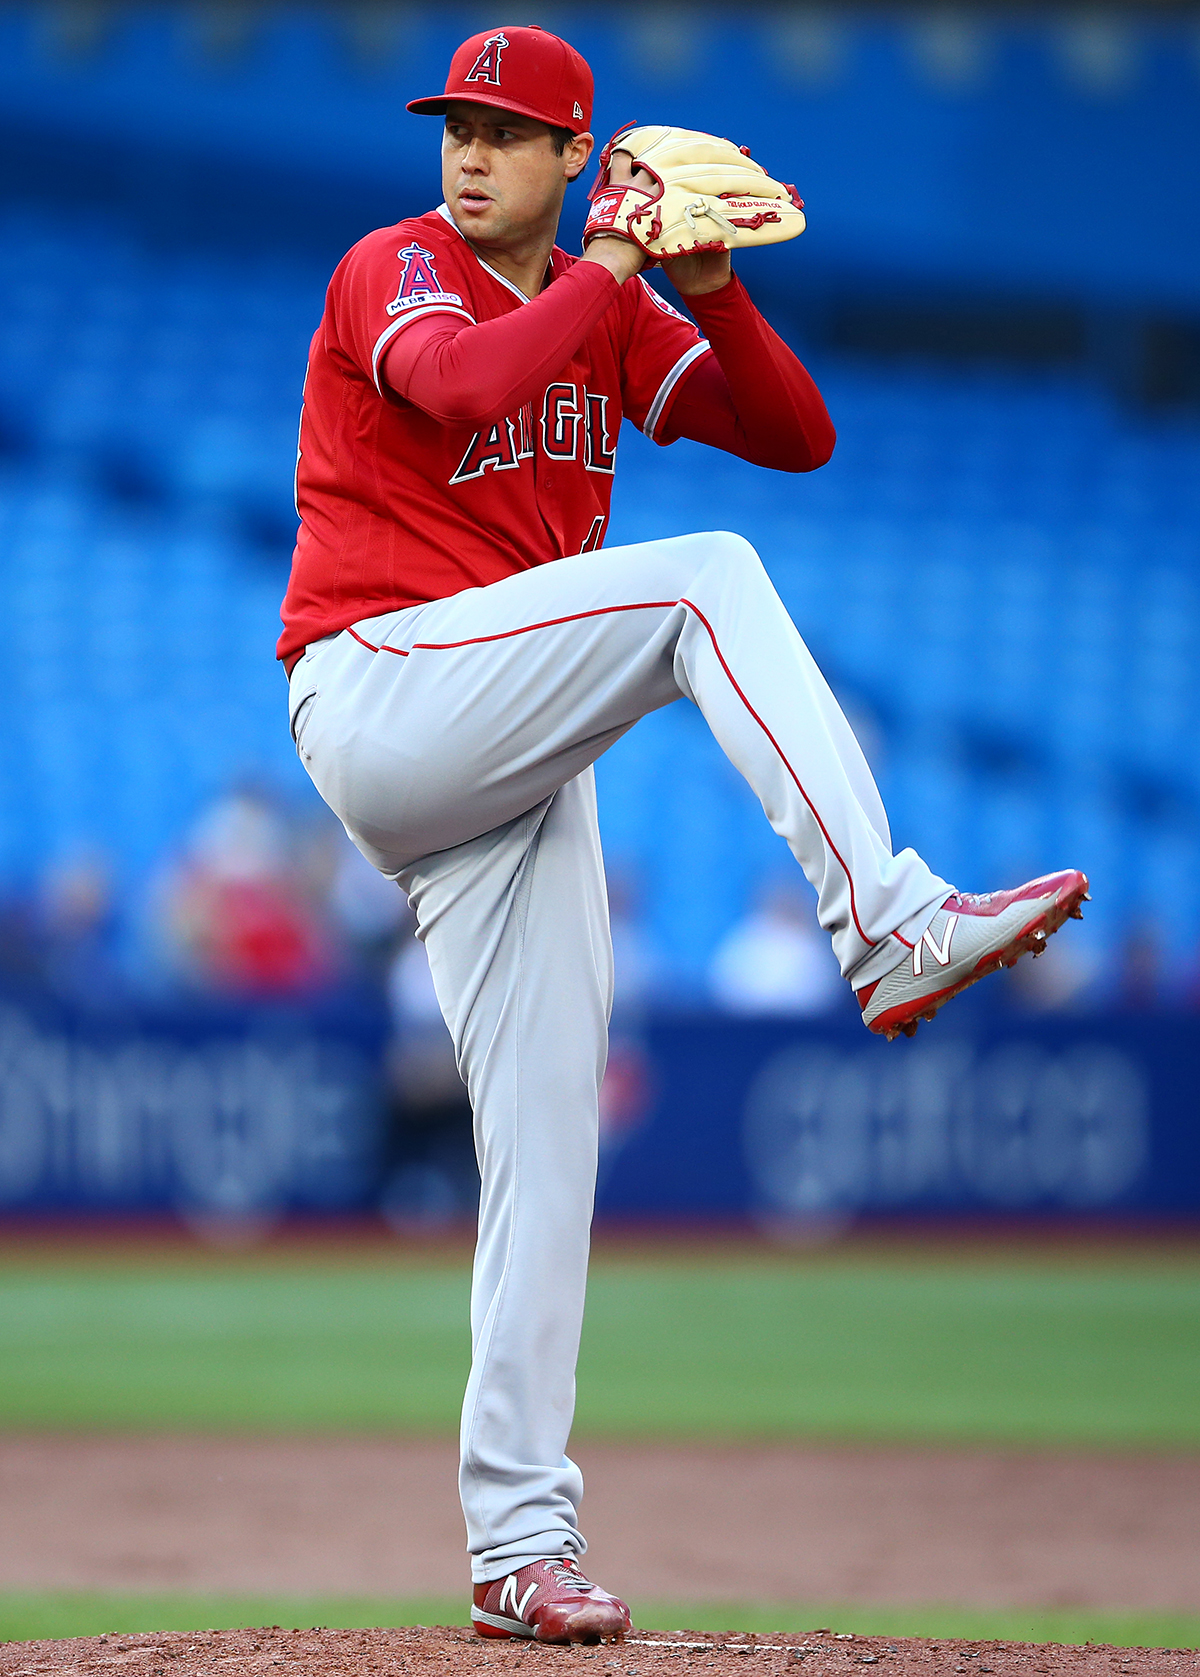 Tyler Skaggs #45 of the Los Angeles Angels of Anaheim delivers a pitch in the first inning during a MLB game against the Toronto Blue Jays at Rogers Centre on June 18, 2019